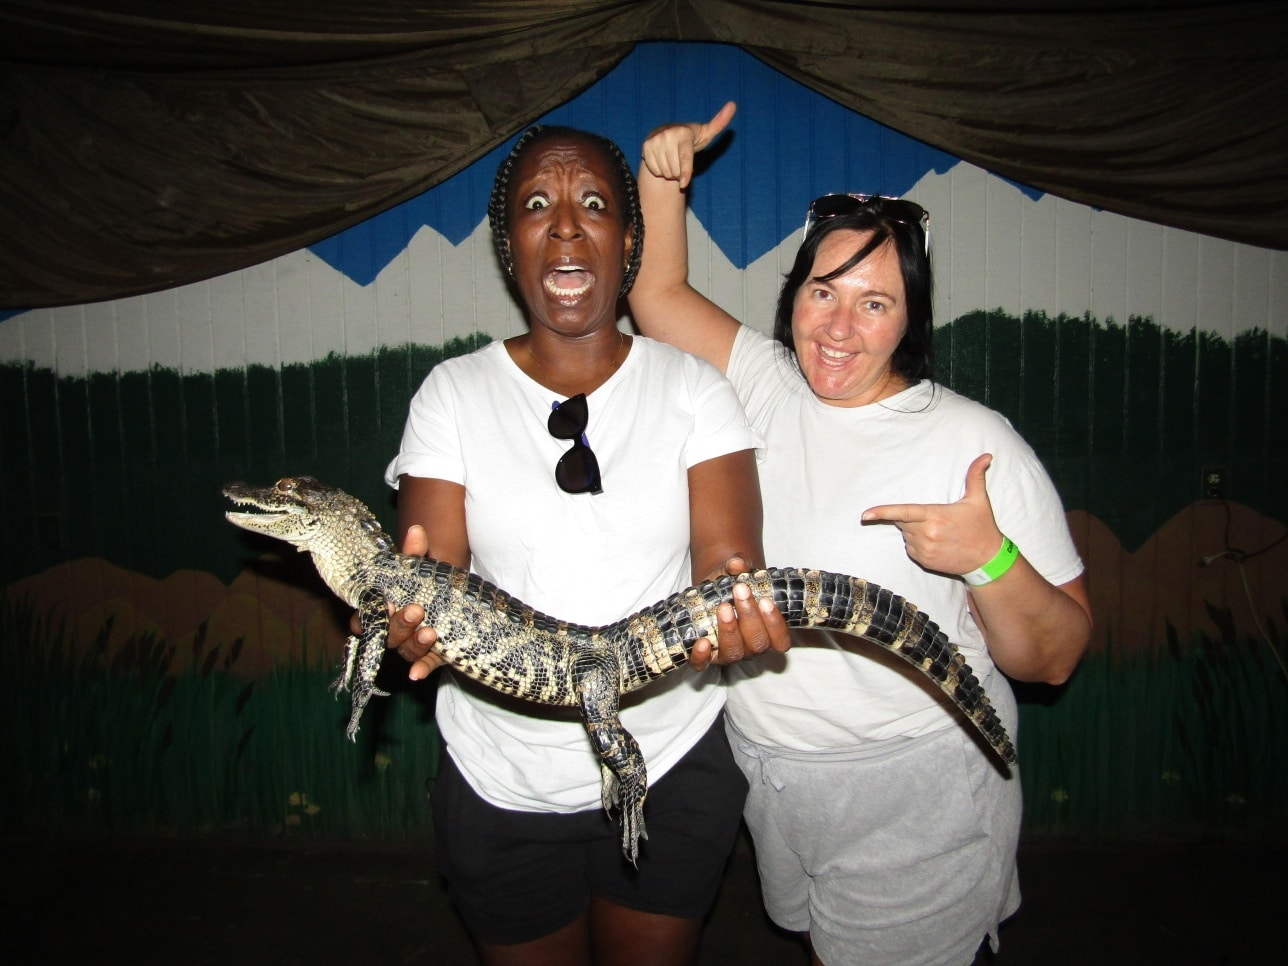 Image of guests holding a alligator at the Colorado Gator Garm